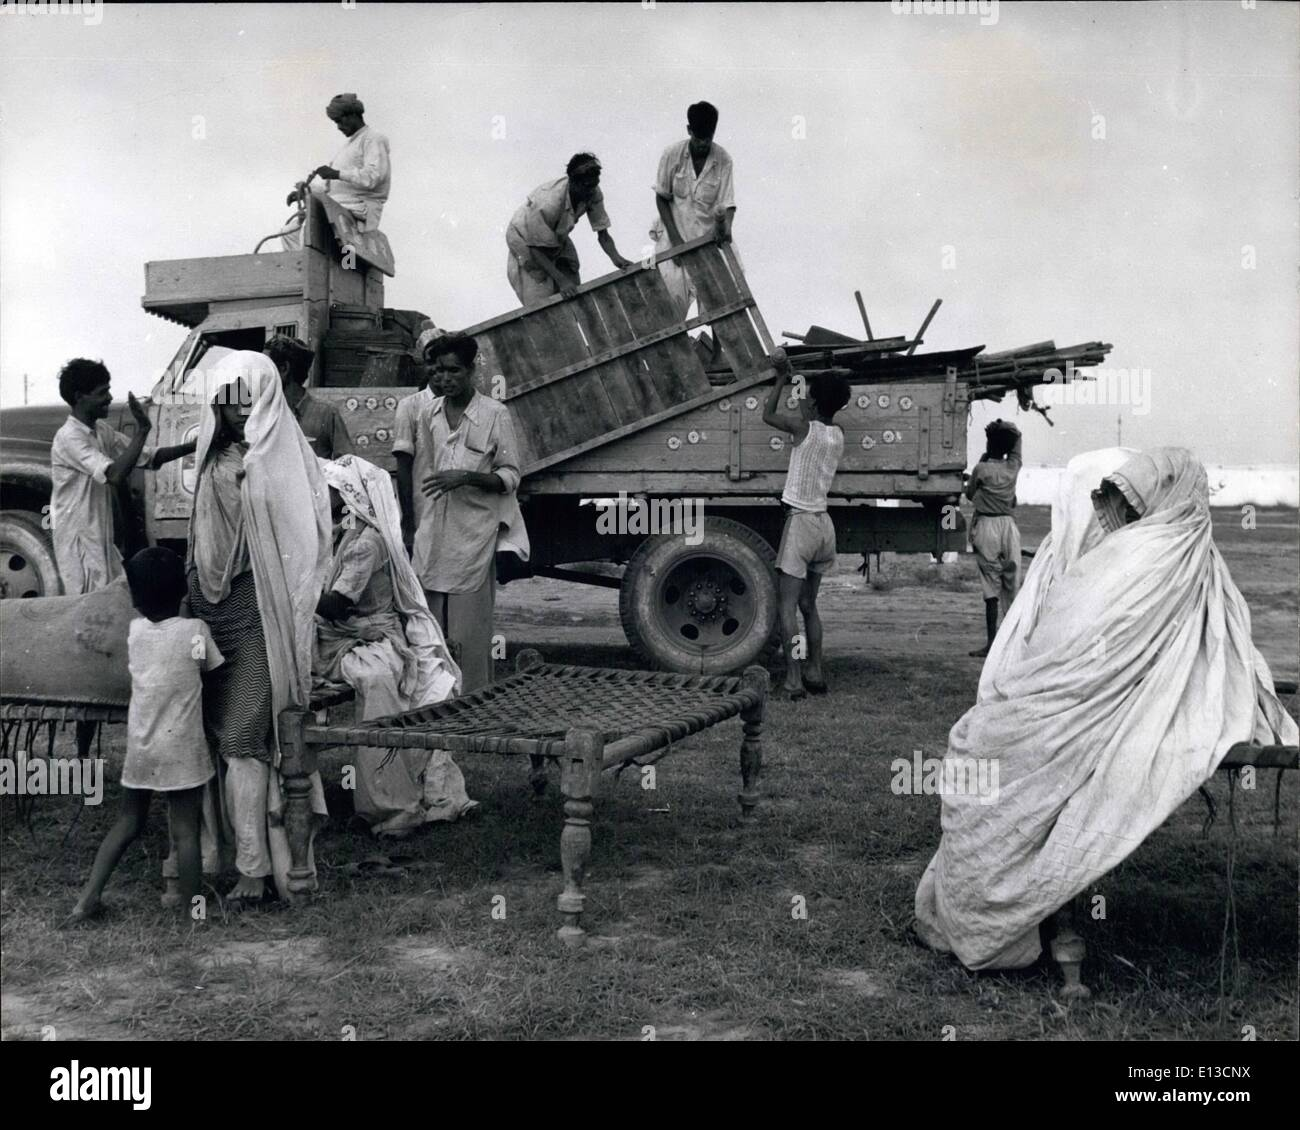 Mar. 02, 2012 - Destination reached: Pakistani families unload their simple crude furniture on arrival at the new - Stock Image